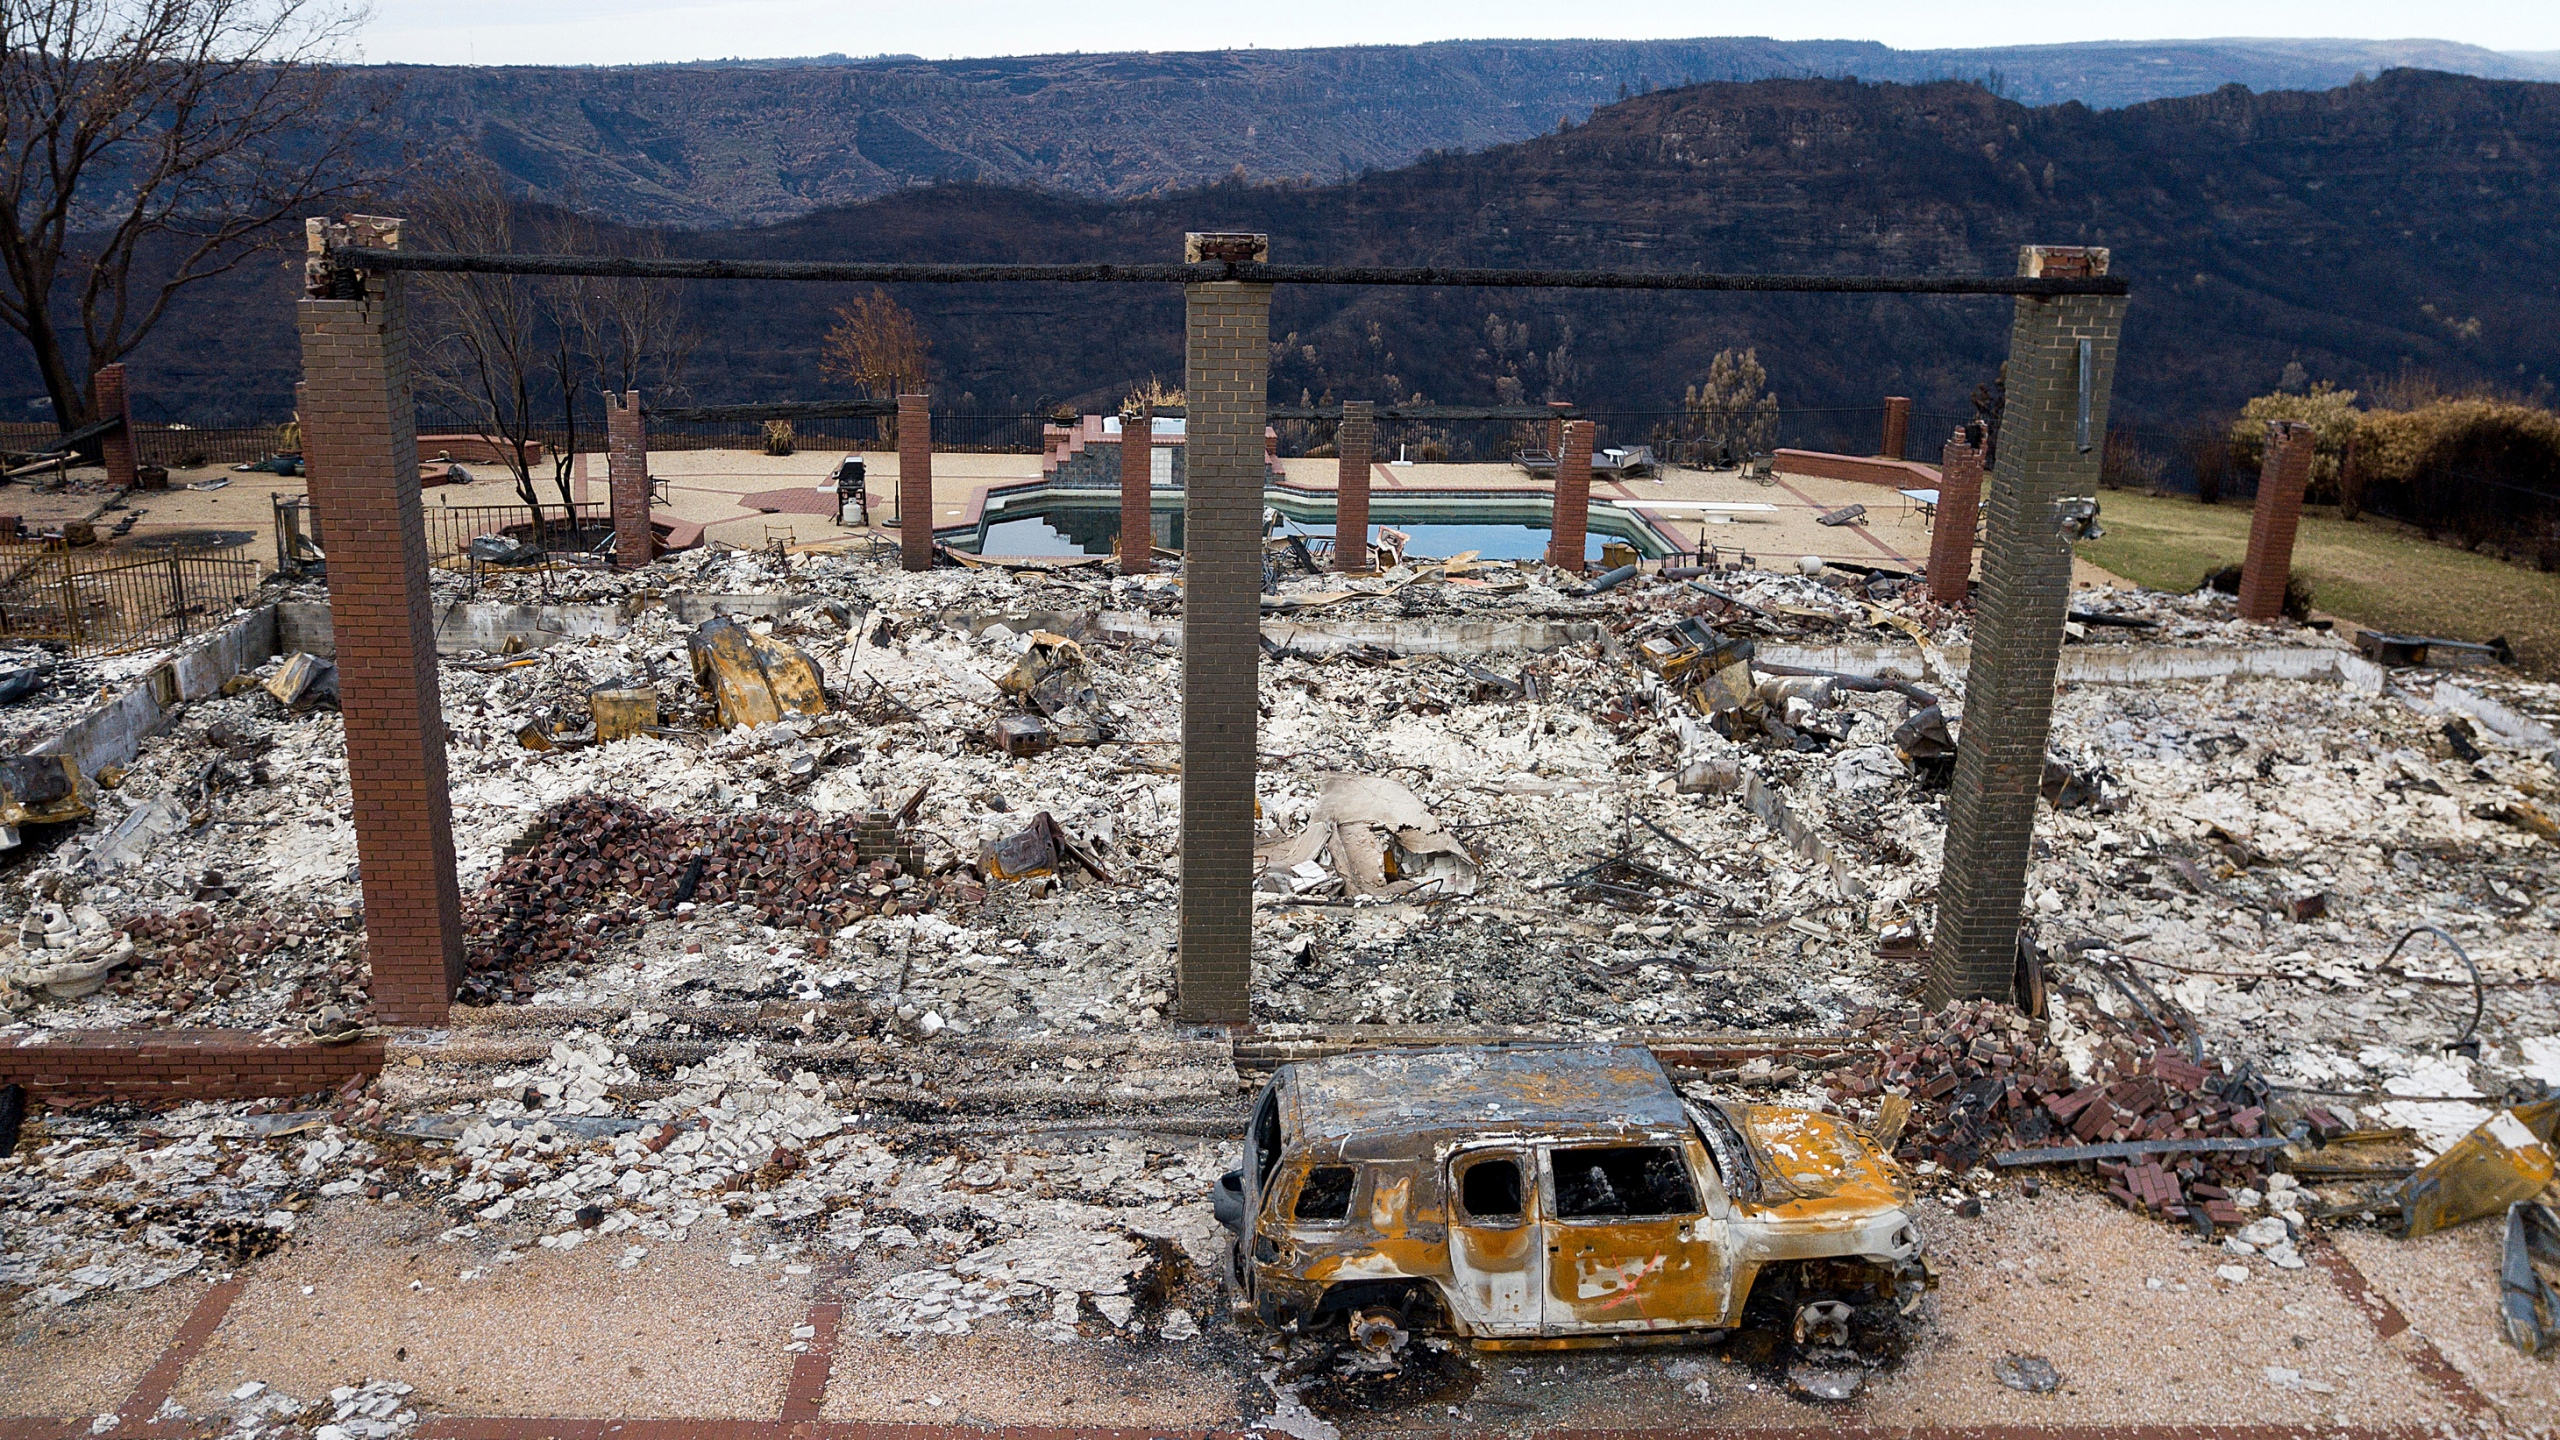 In this Dec. 3, 2018, file photo, a vehicle rests in front of a home leveled by the Camp Fire in Paradise, Calif. (AP Photo/Noah Berger, File)